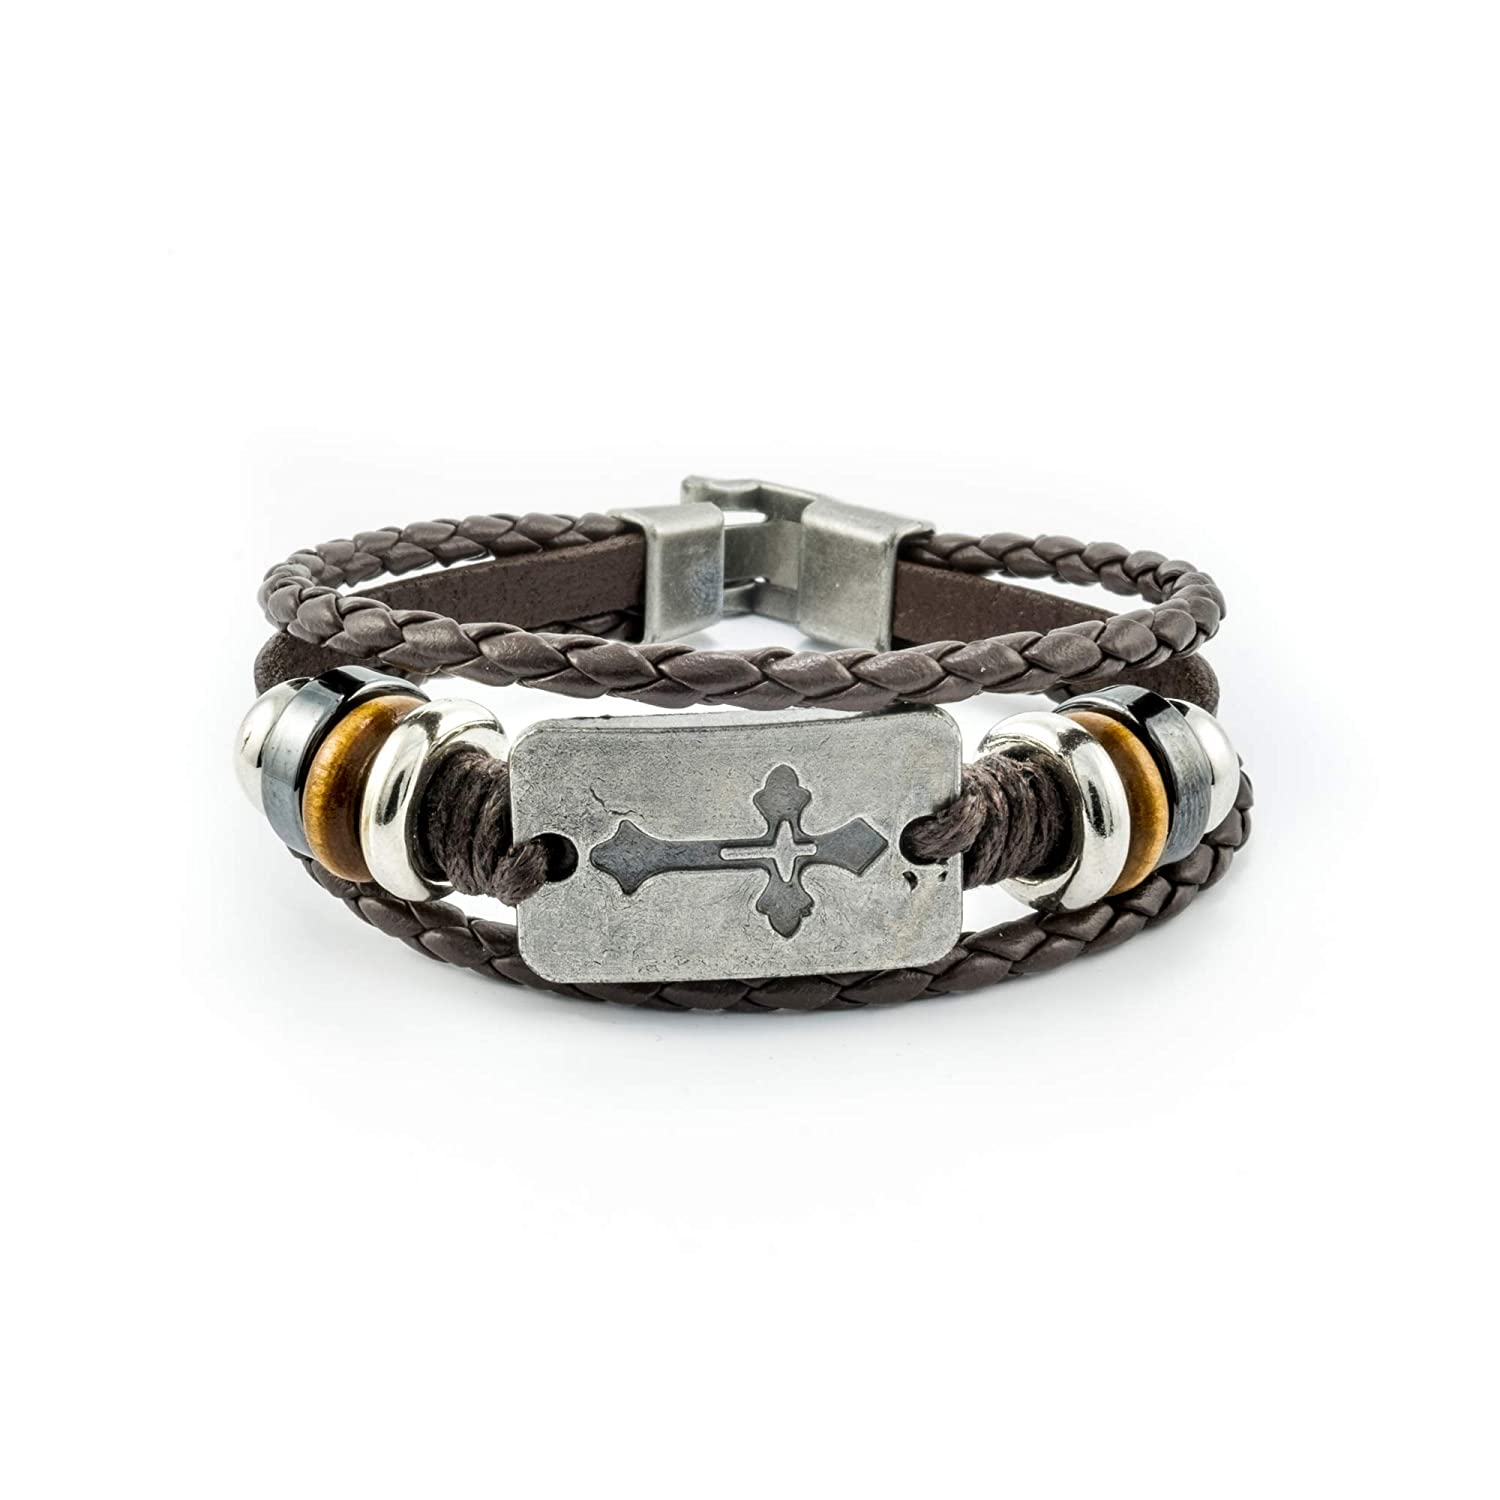 Women's Men's Brown Leather Wrap Christian Inspirational Beaded Alloy Cross Bracelet - 8 inches - HS-LCB014-BR Heavensentgifts